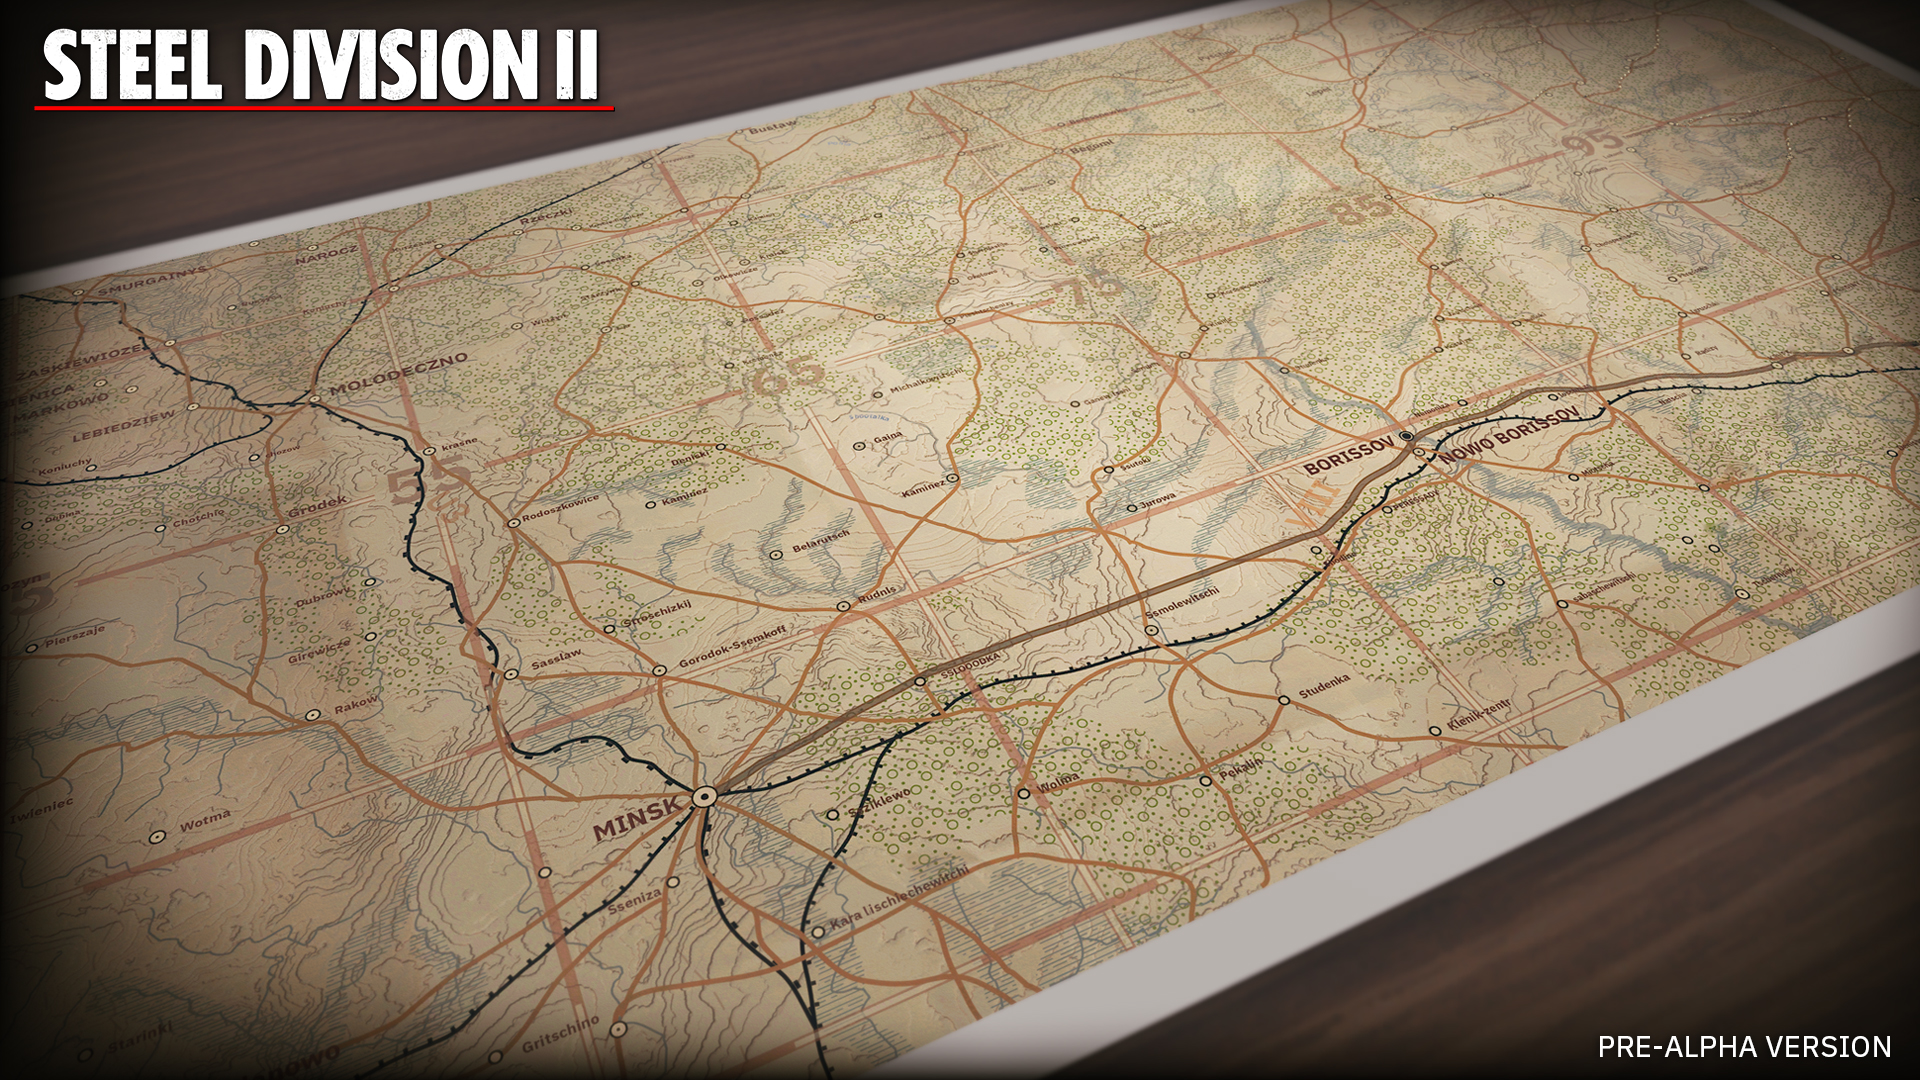 Steel Division 2 - WWII Real-Time Strategy Game